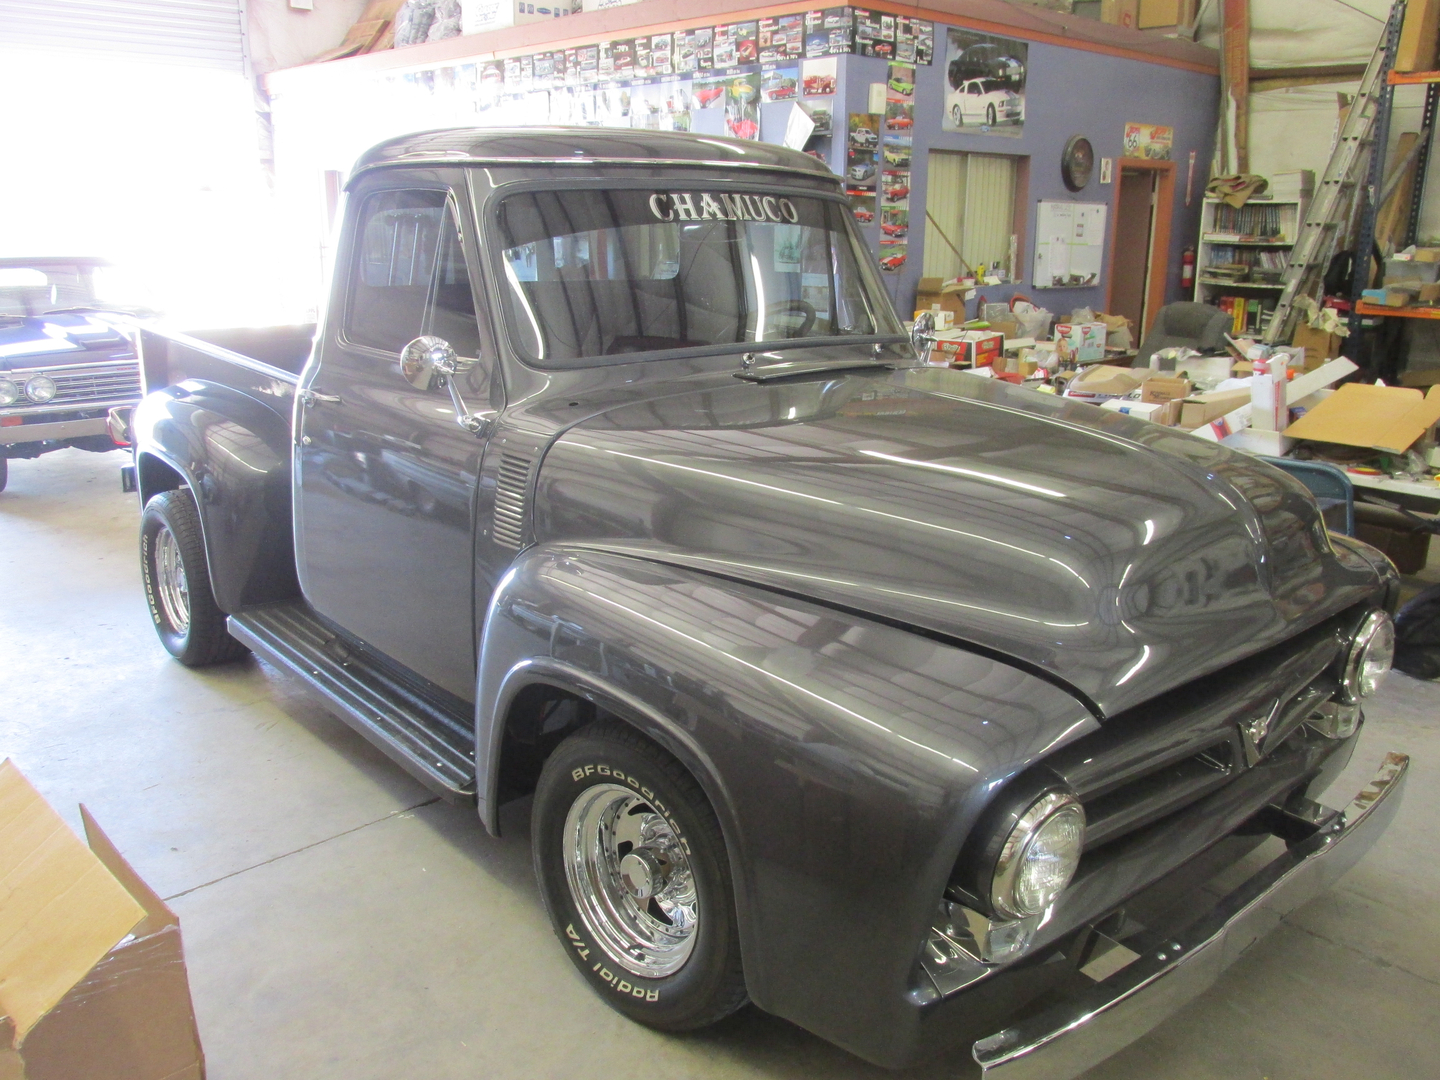 55 F100 1955 Ford Truck Interior This Is A Beautiful With 302 Motor And Aod Transmission Its Painted Charcoal Grey Black Chrome Accents